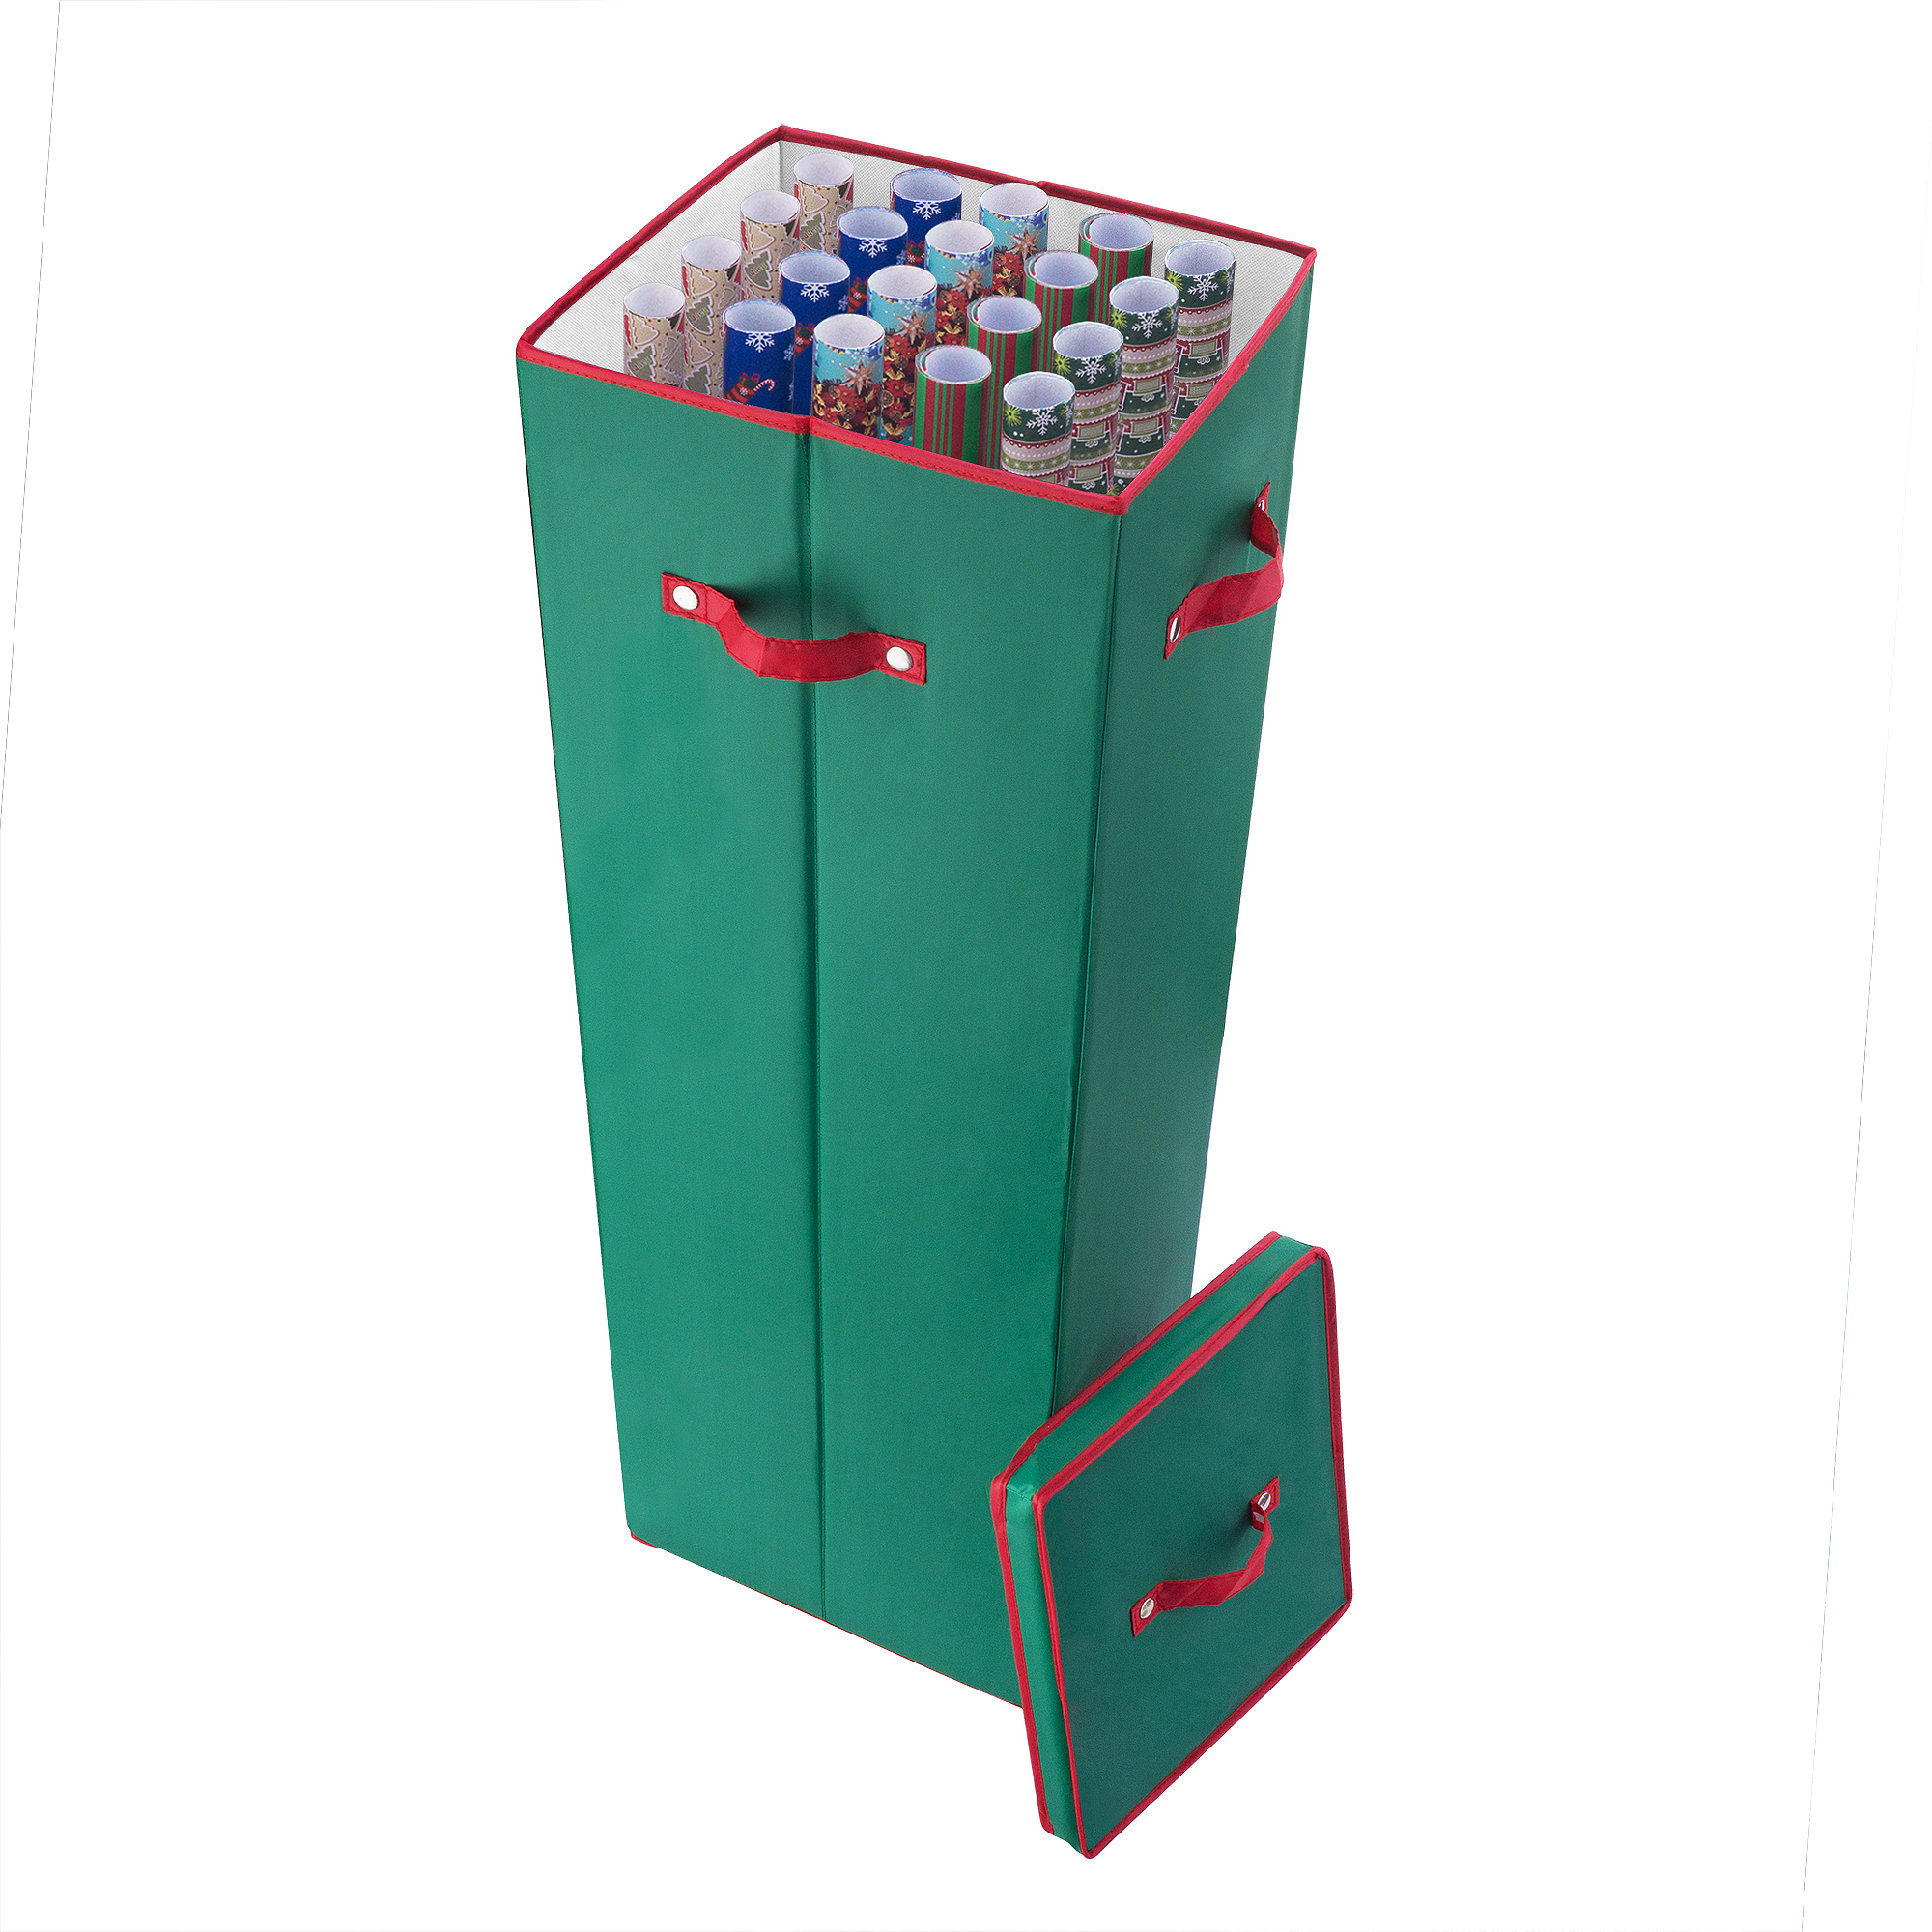 Elf Stor 40 Inch Tall Wrapping Paper Storage Box with Lid, Green